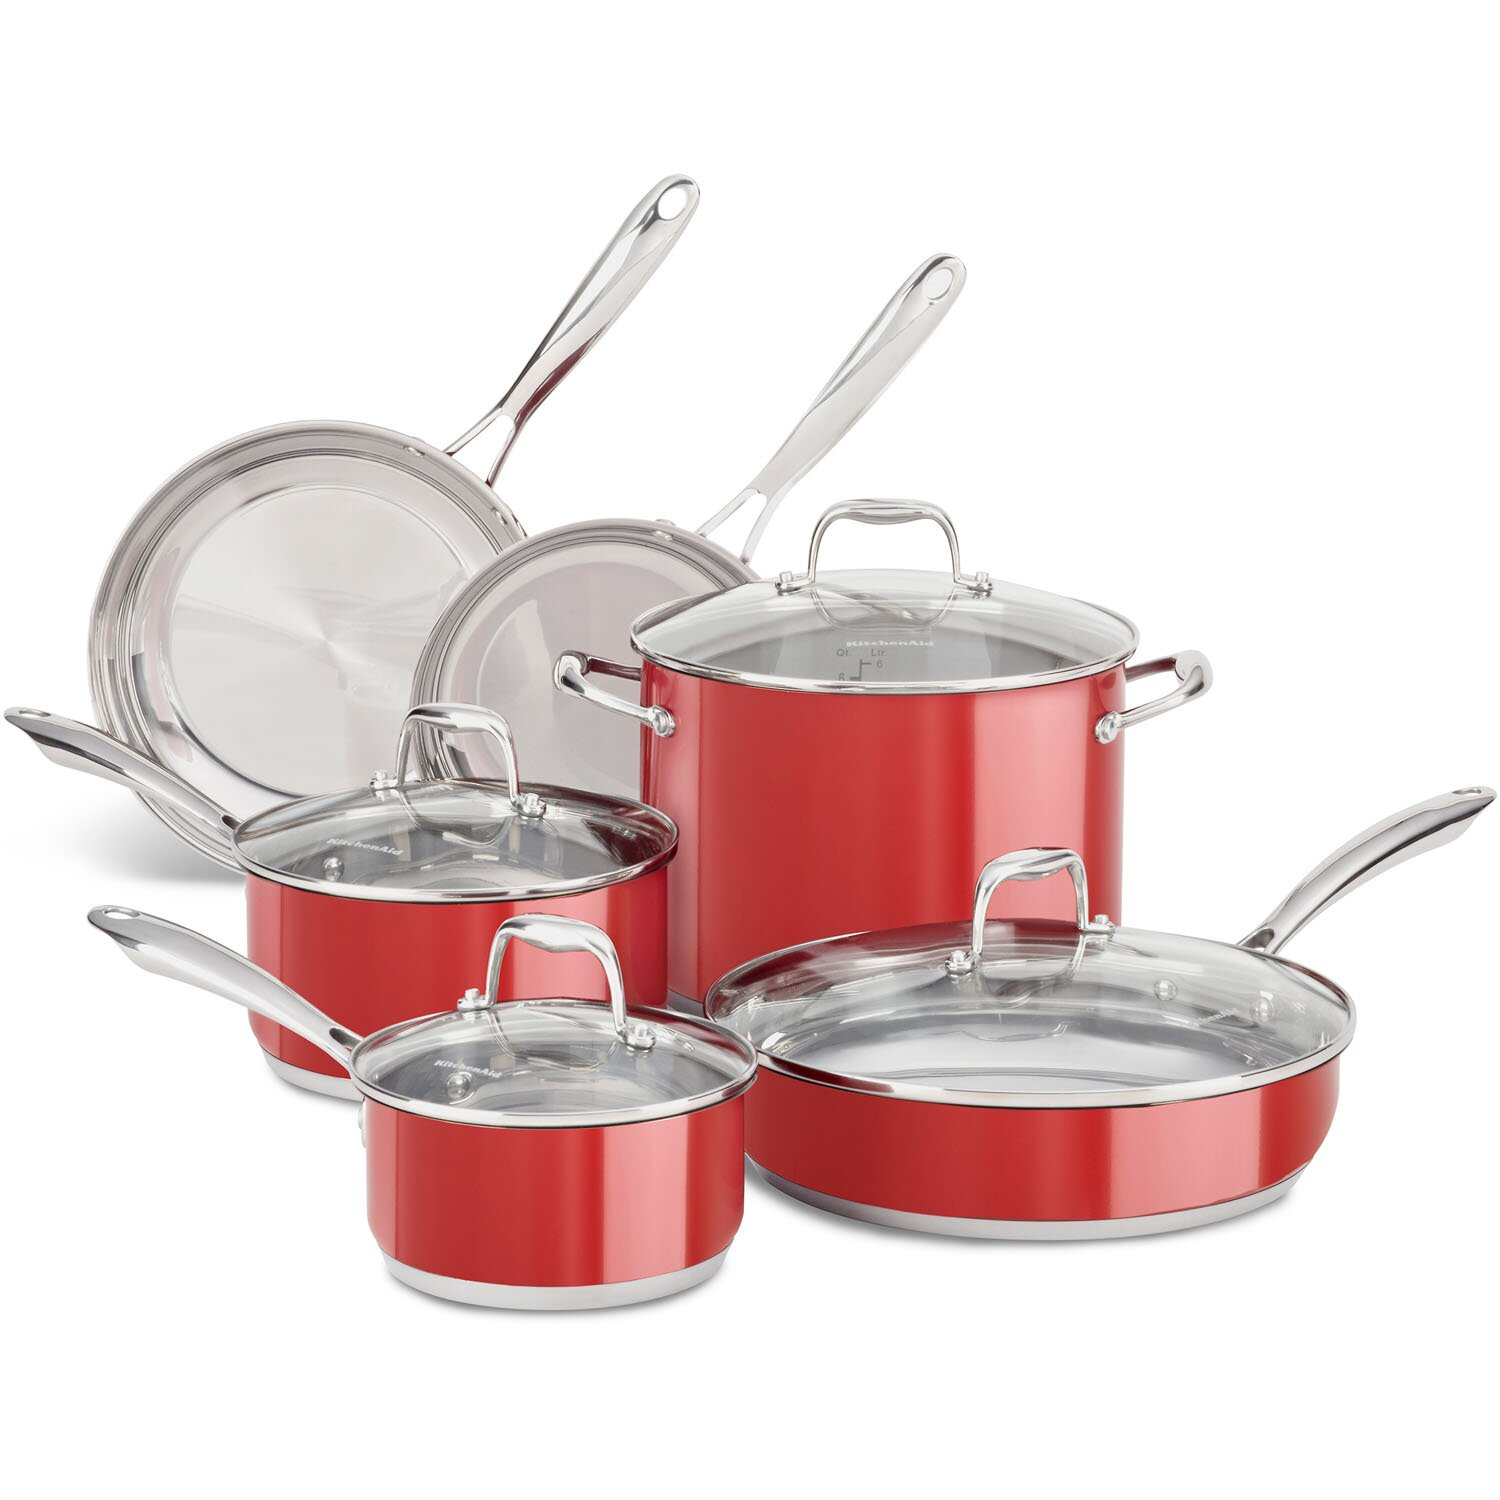 Kitchen Cookware Sets Review